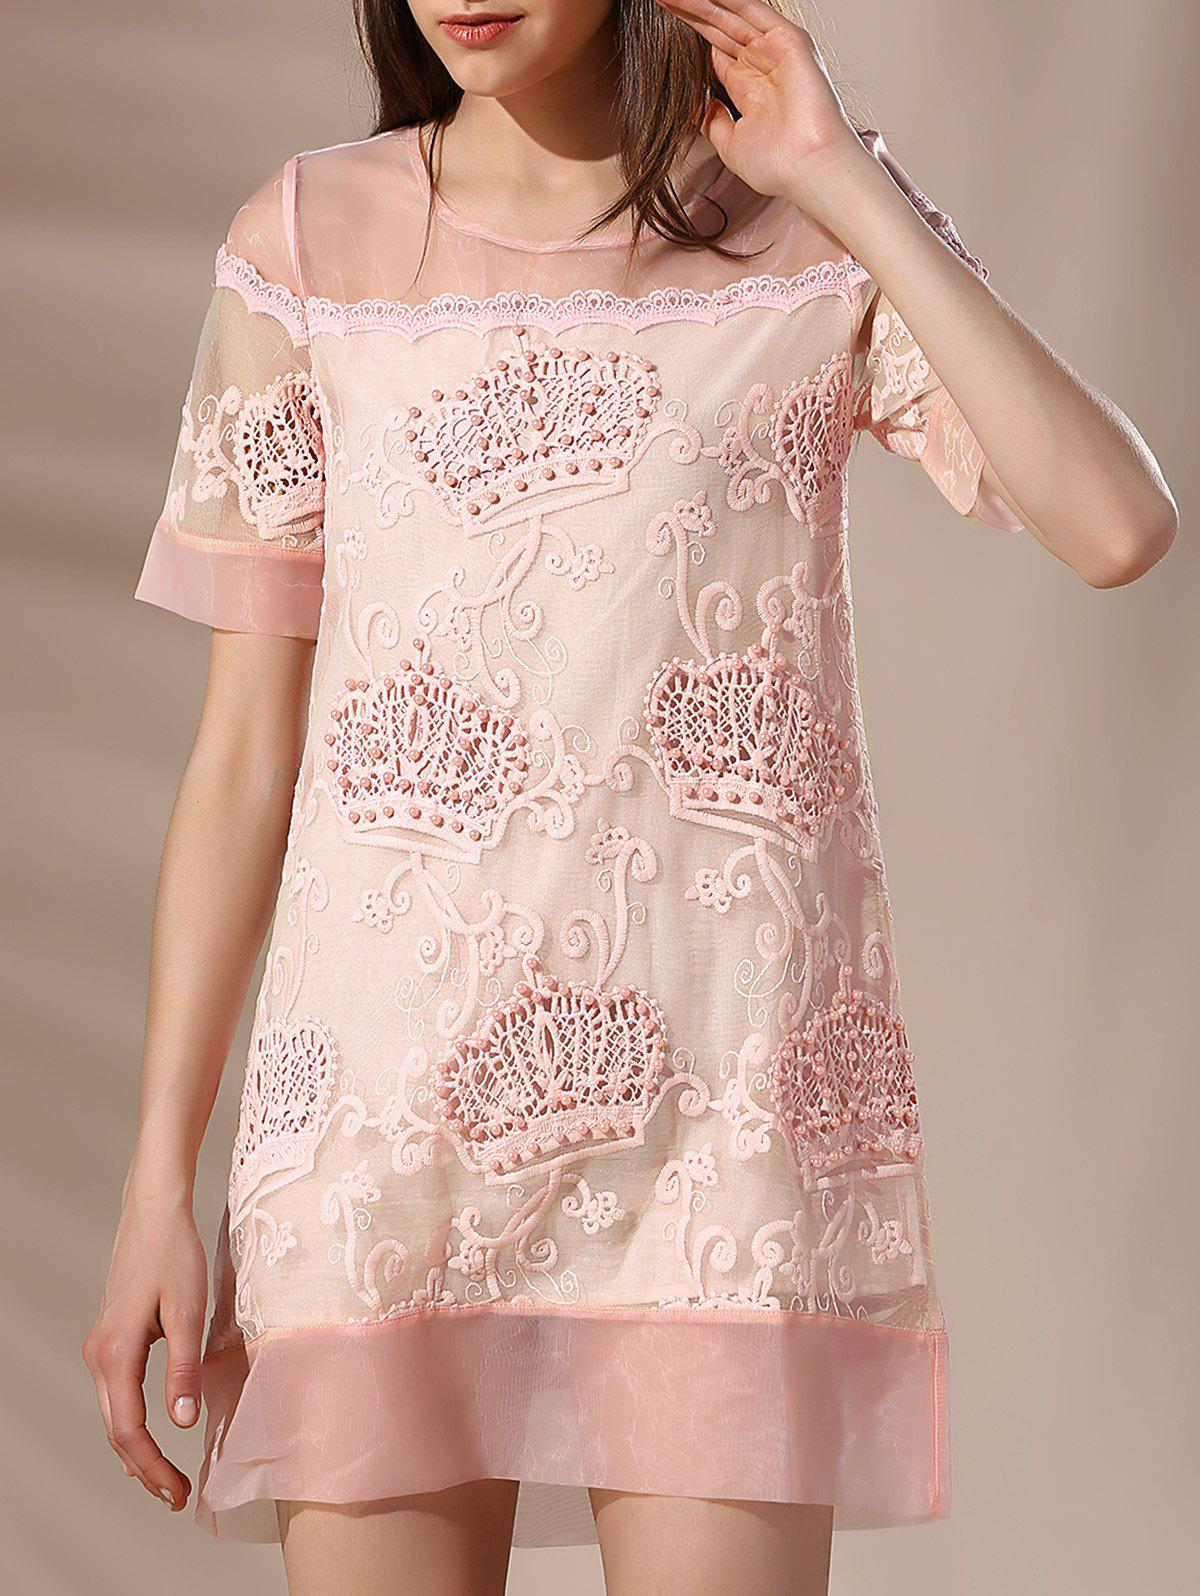 Trendy Round Neck Embroidery Beaded Voile Spliced Women's Dress - LIGHT PINK XL